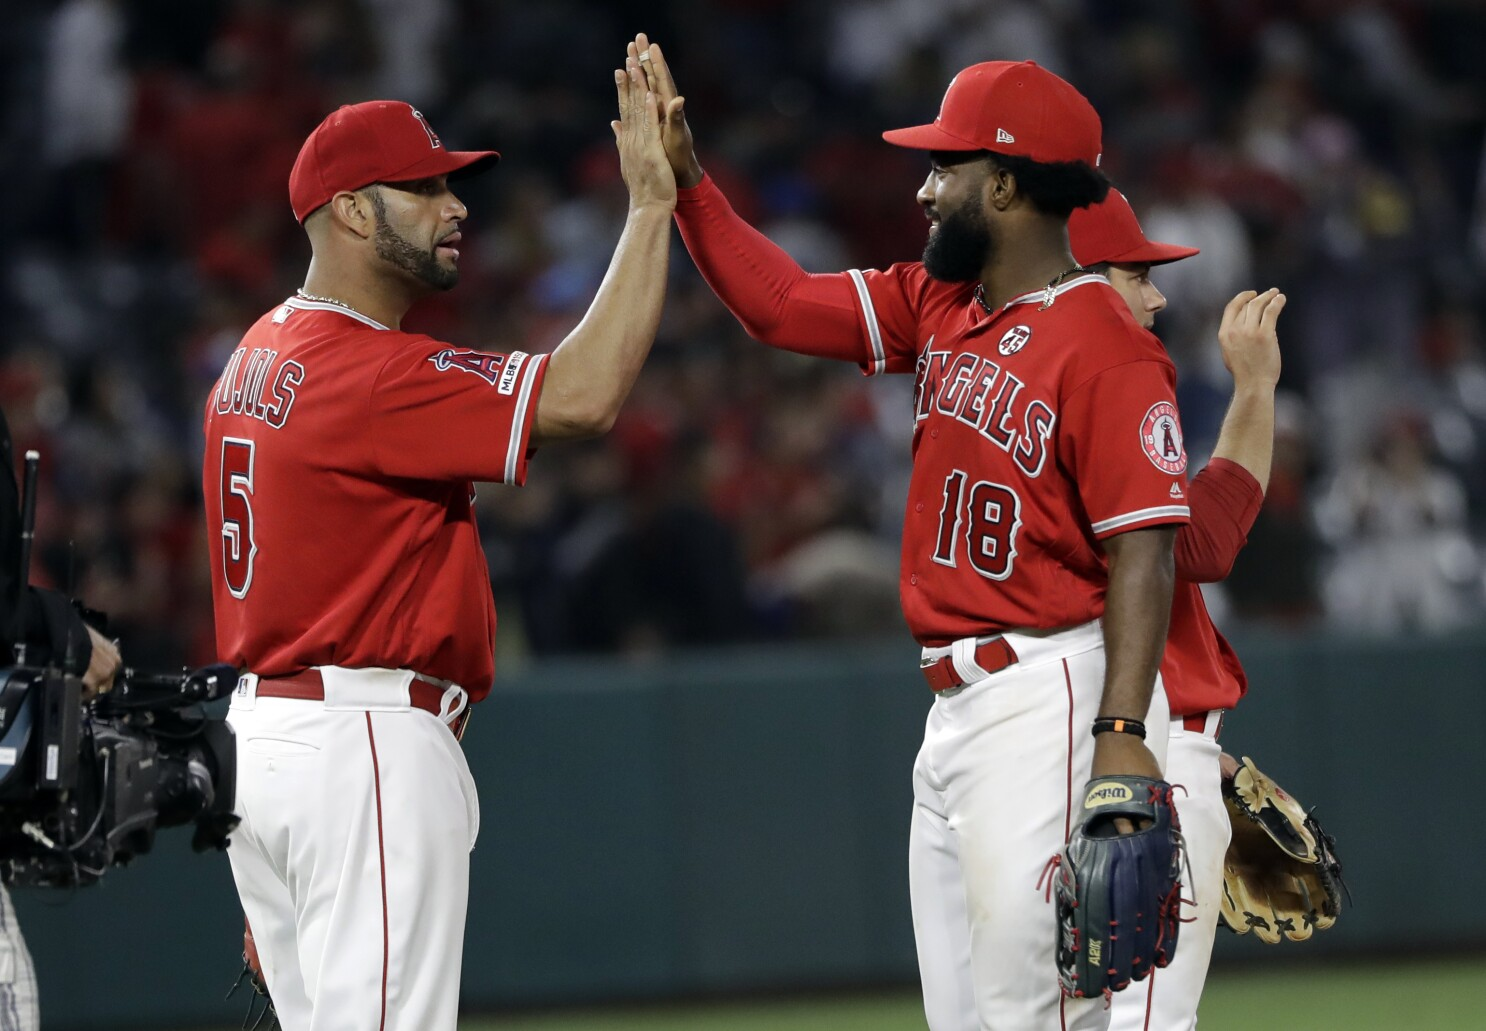 Angels beat Astros to run win streak to five - Los Angeles Times